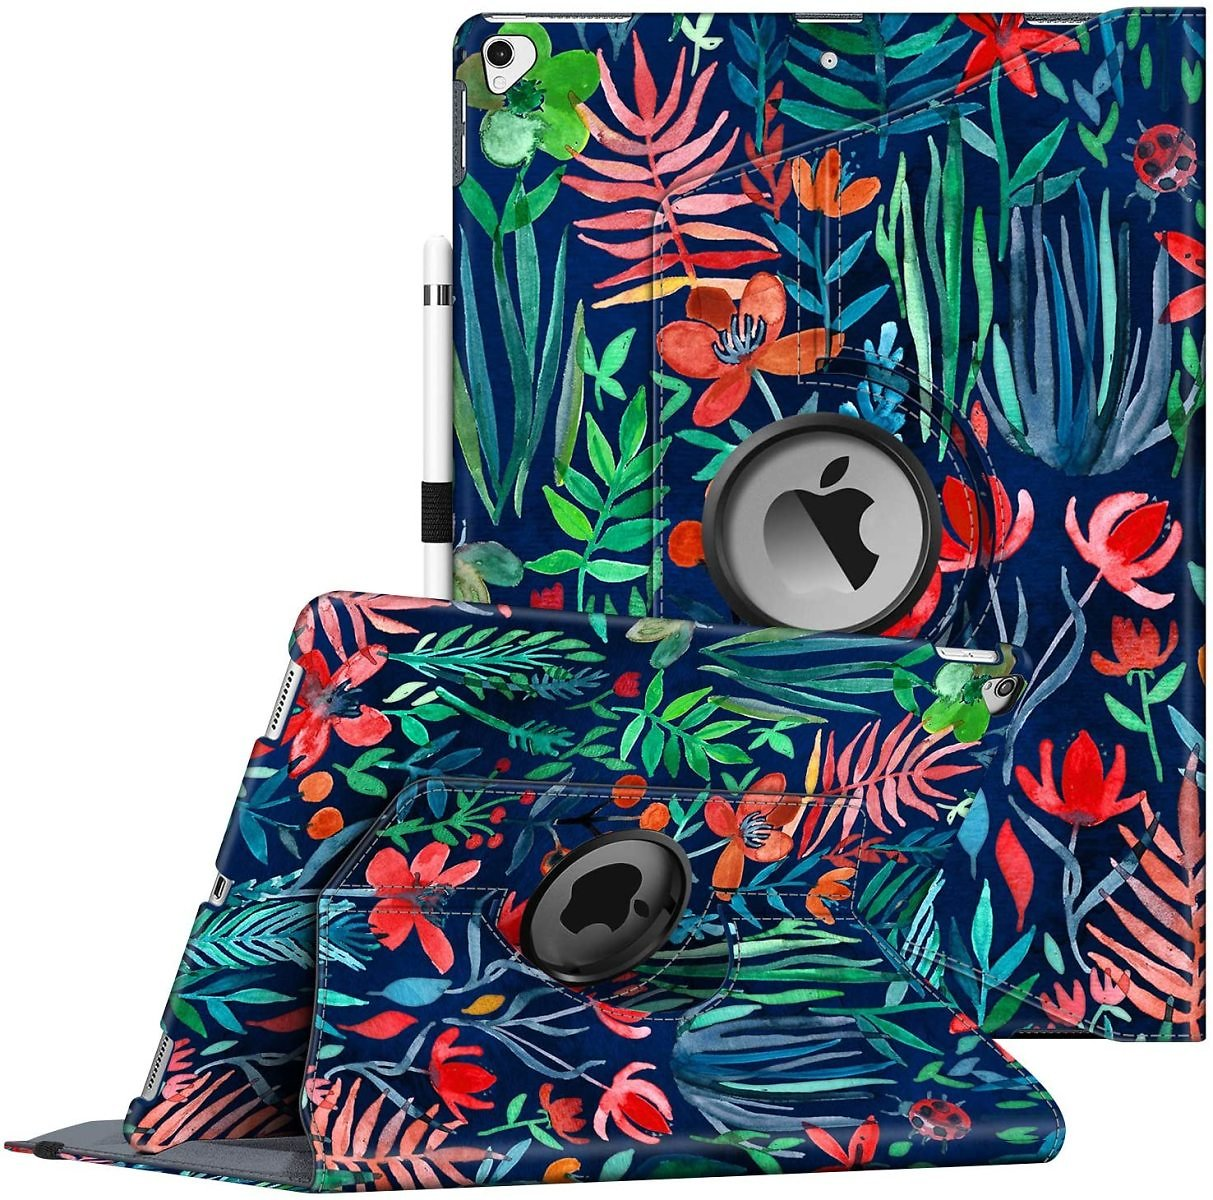 Fintie Rotating Case for IPad Pro 12.9 (2nd Gen) 2017 / IPad Pro 12.9 (1st Gen) 2015 - 360 Degree Rotating Stand Case with Smart Protective Cover Auto Sleep/Wake, Jungle Night